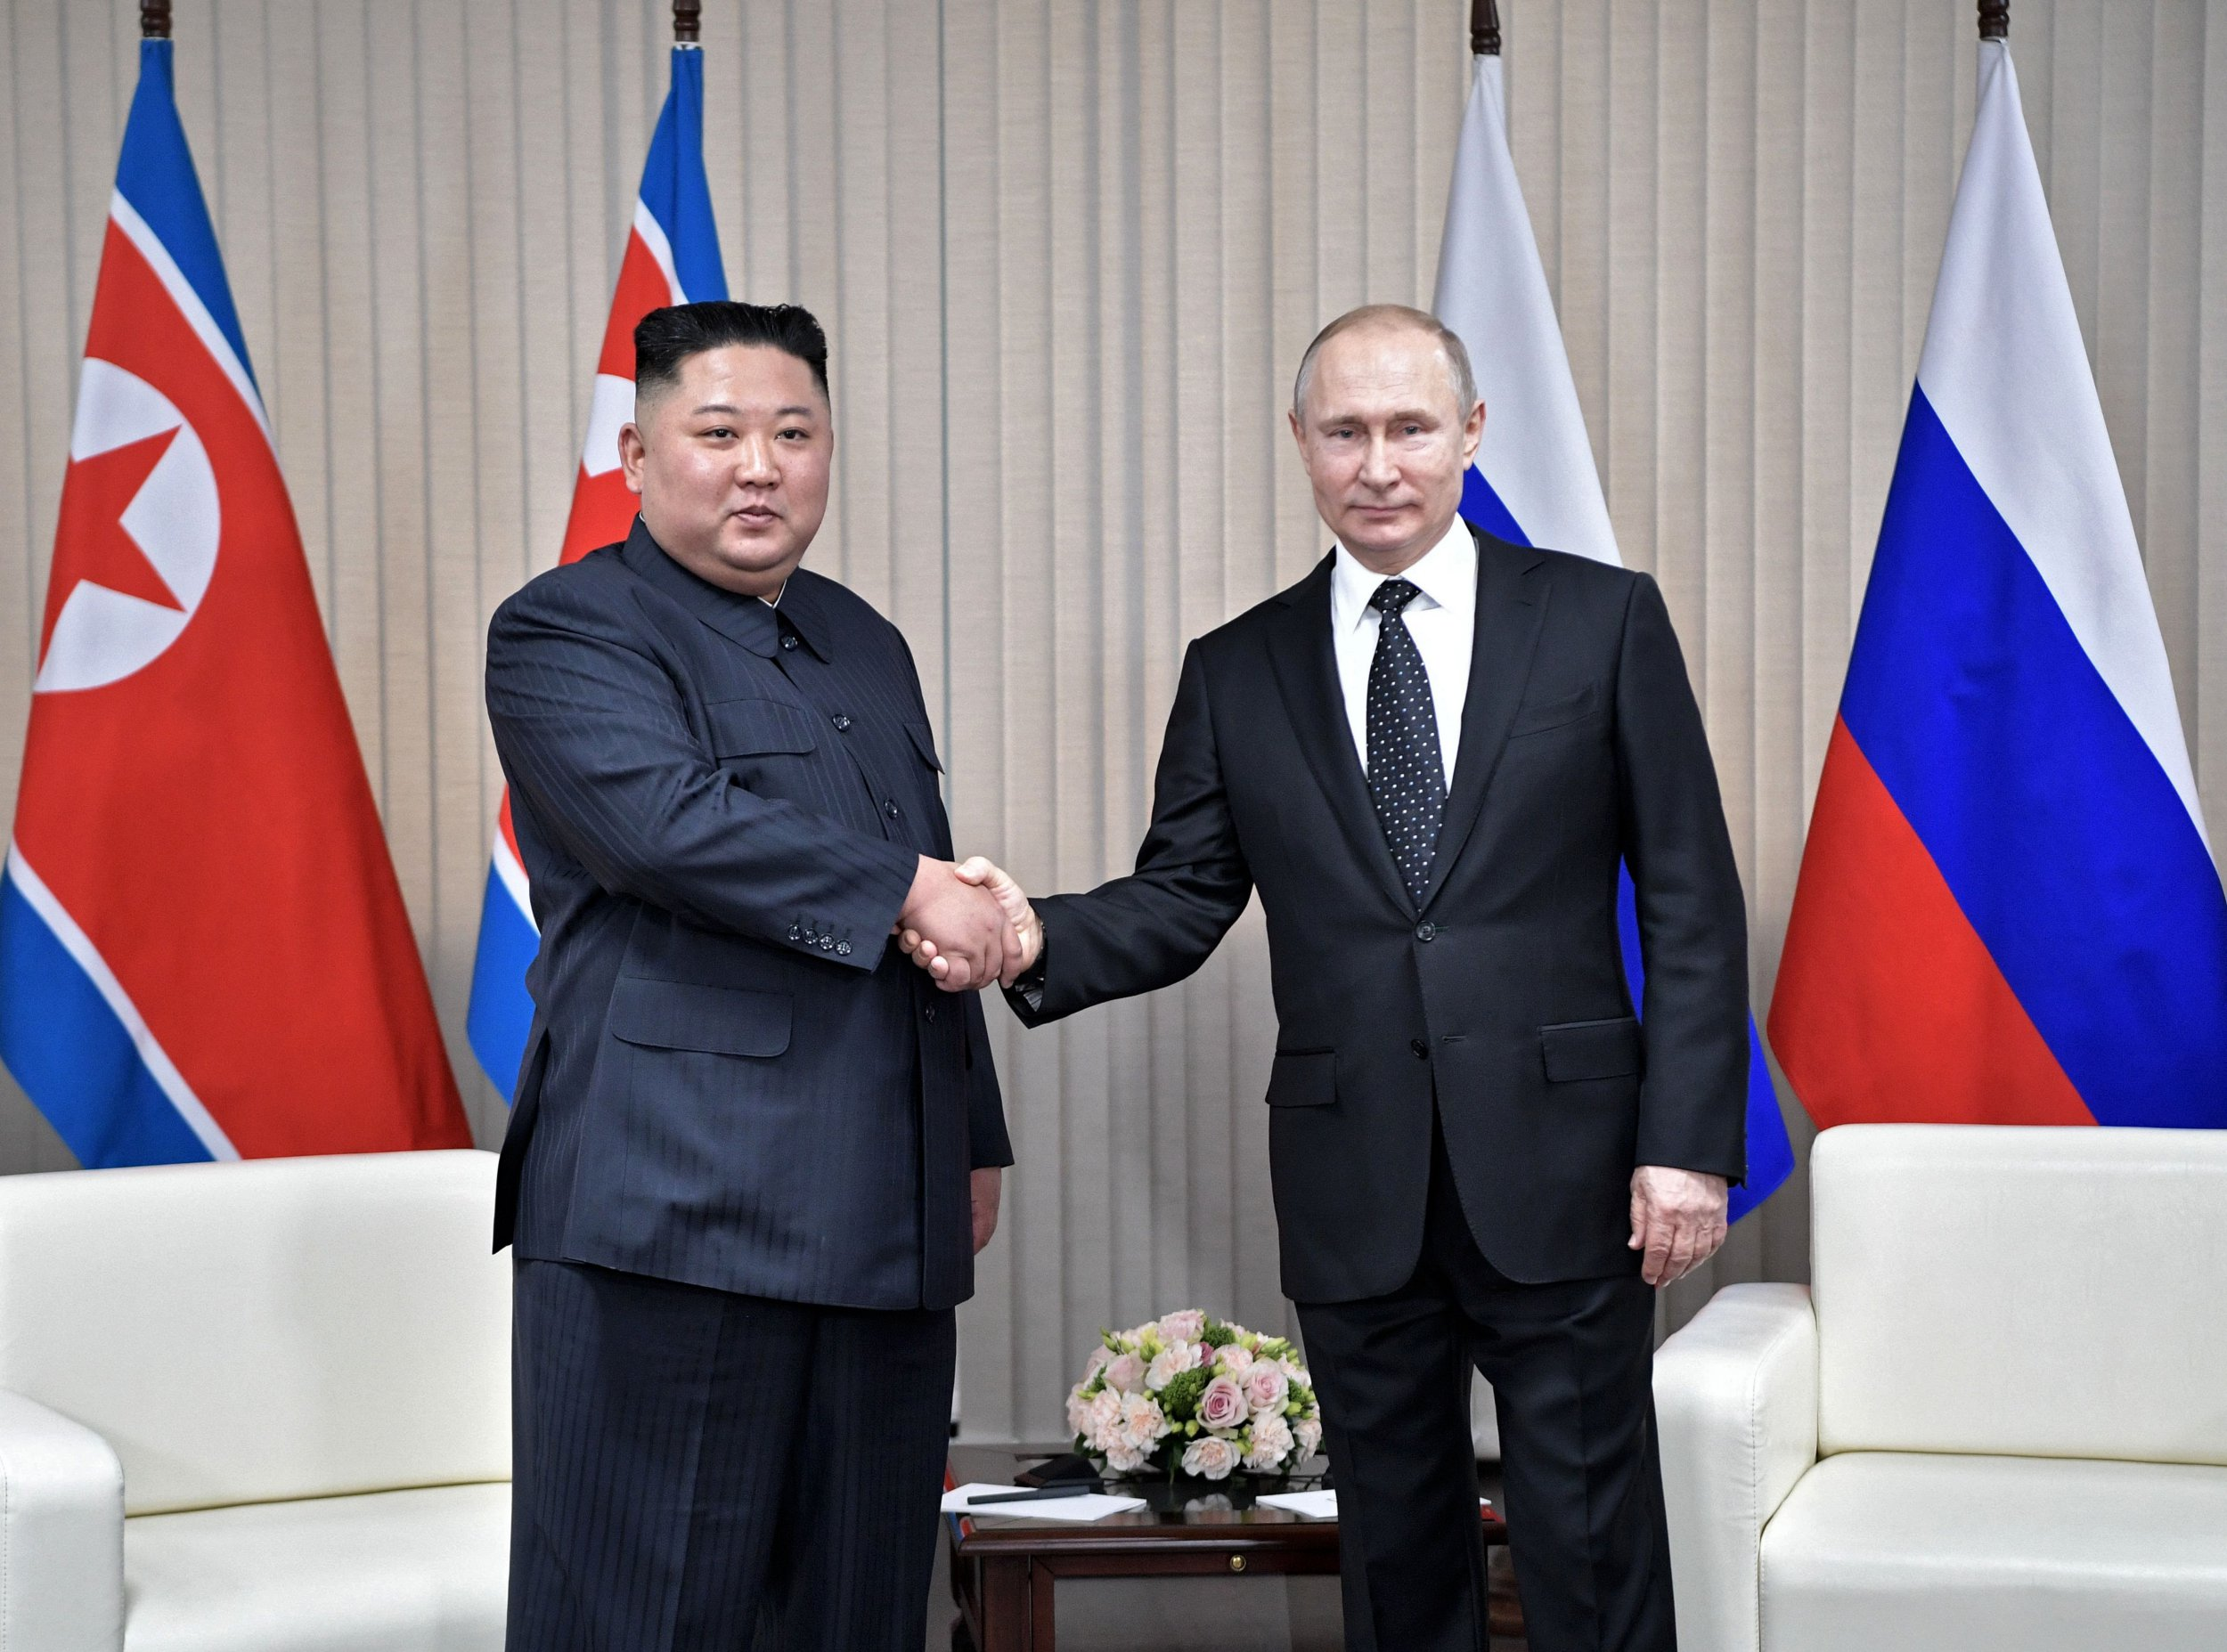 TOPSHOT - Russian President Vladimir Putin meets with North Korean leader Kim Jong Un at the Far Eastern Federal University campus on Russky island in the far-eastern Russian port of Vladivostok on April 25, 2019. (Photo by Alexey NIKOLSKY / SPUTNIK / AFP) (Photo credit should read ALEXEY NIKOLSKY/AFP/Getty Images)